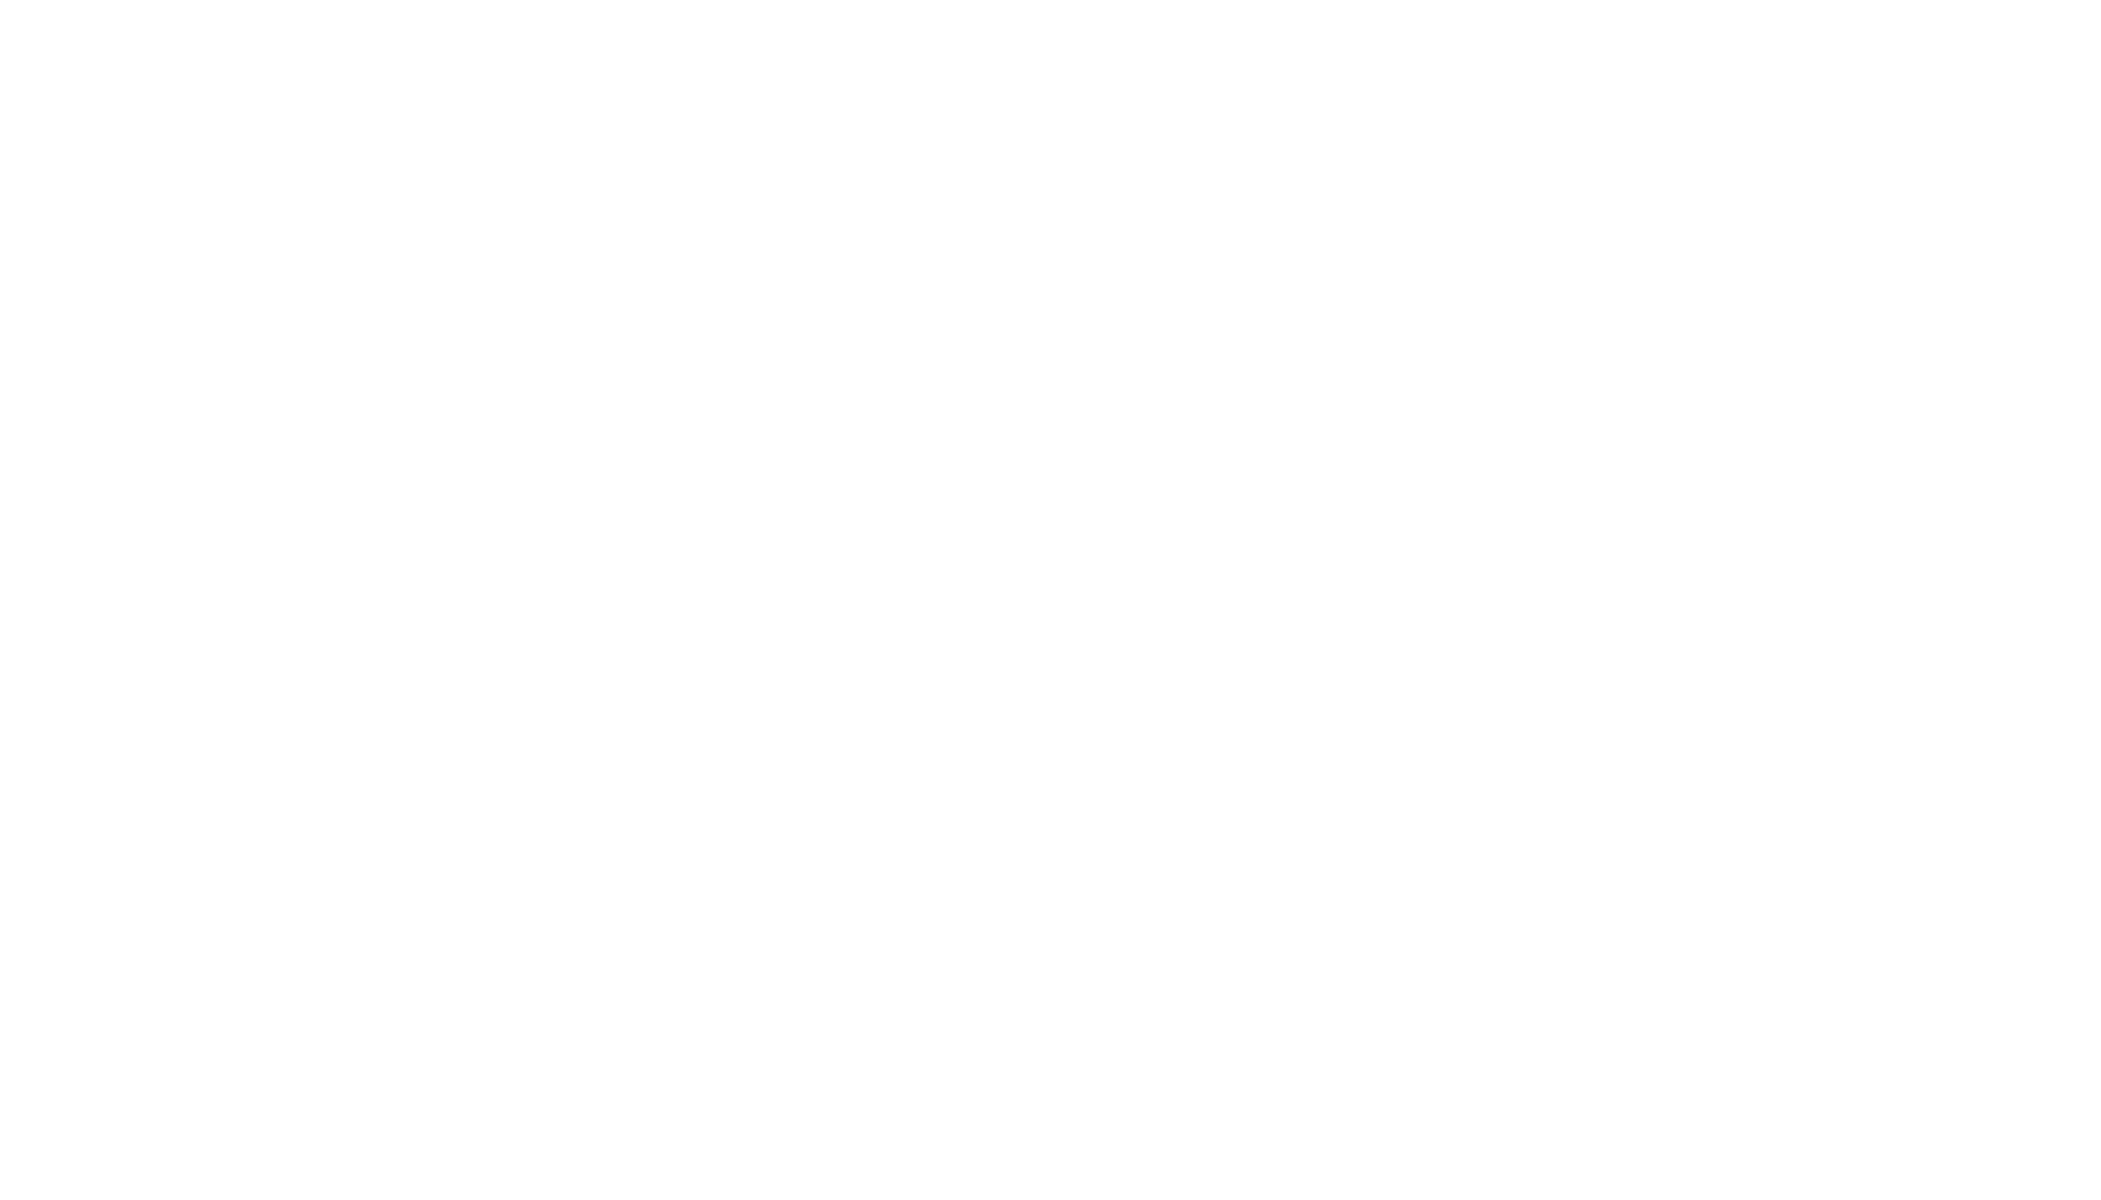 Relativity Women of the Workplace (RelWoW) logo